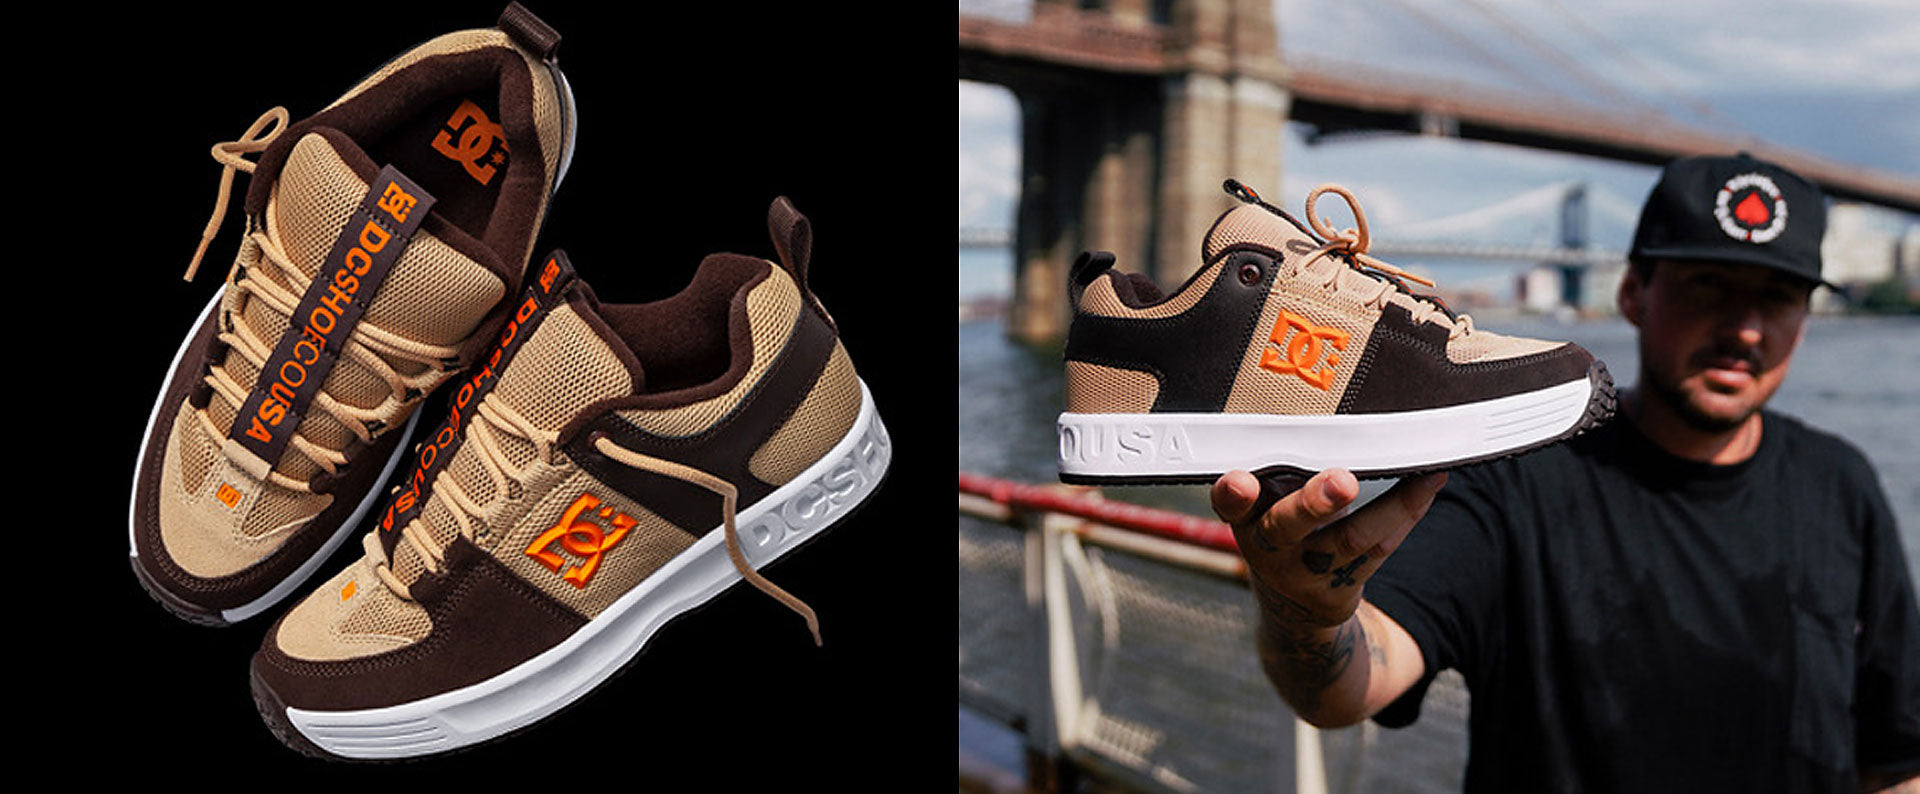 DC Shoes Brian Wenning Heritage Lynx OG Brown - Tan